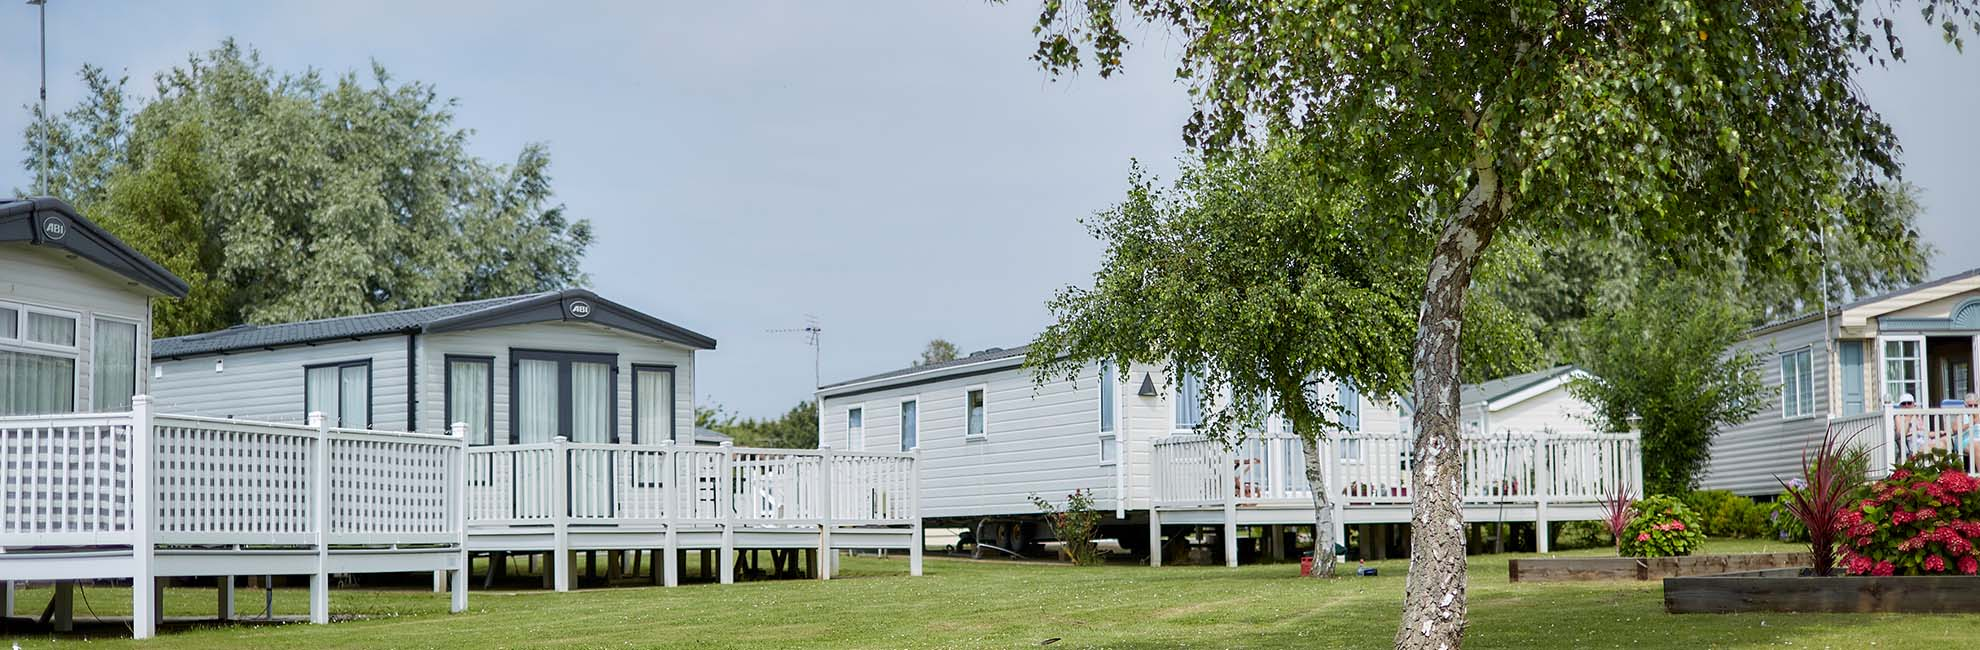 Lakeside lodges at Manor Park